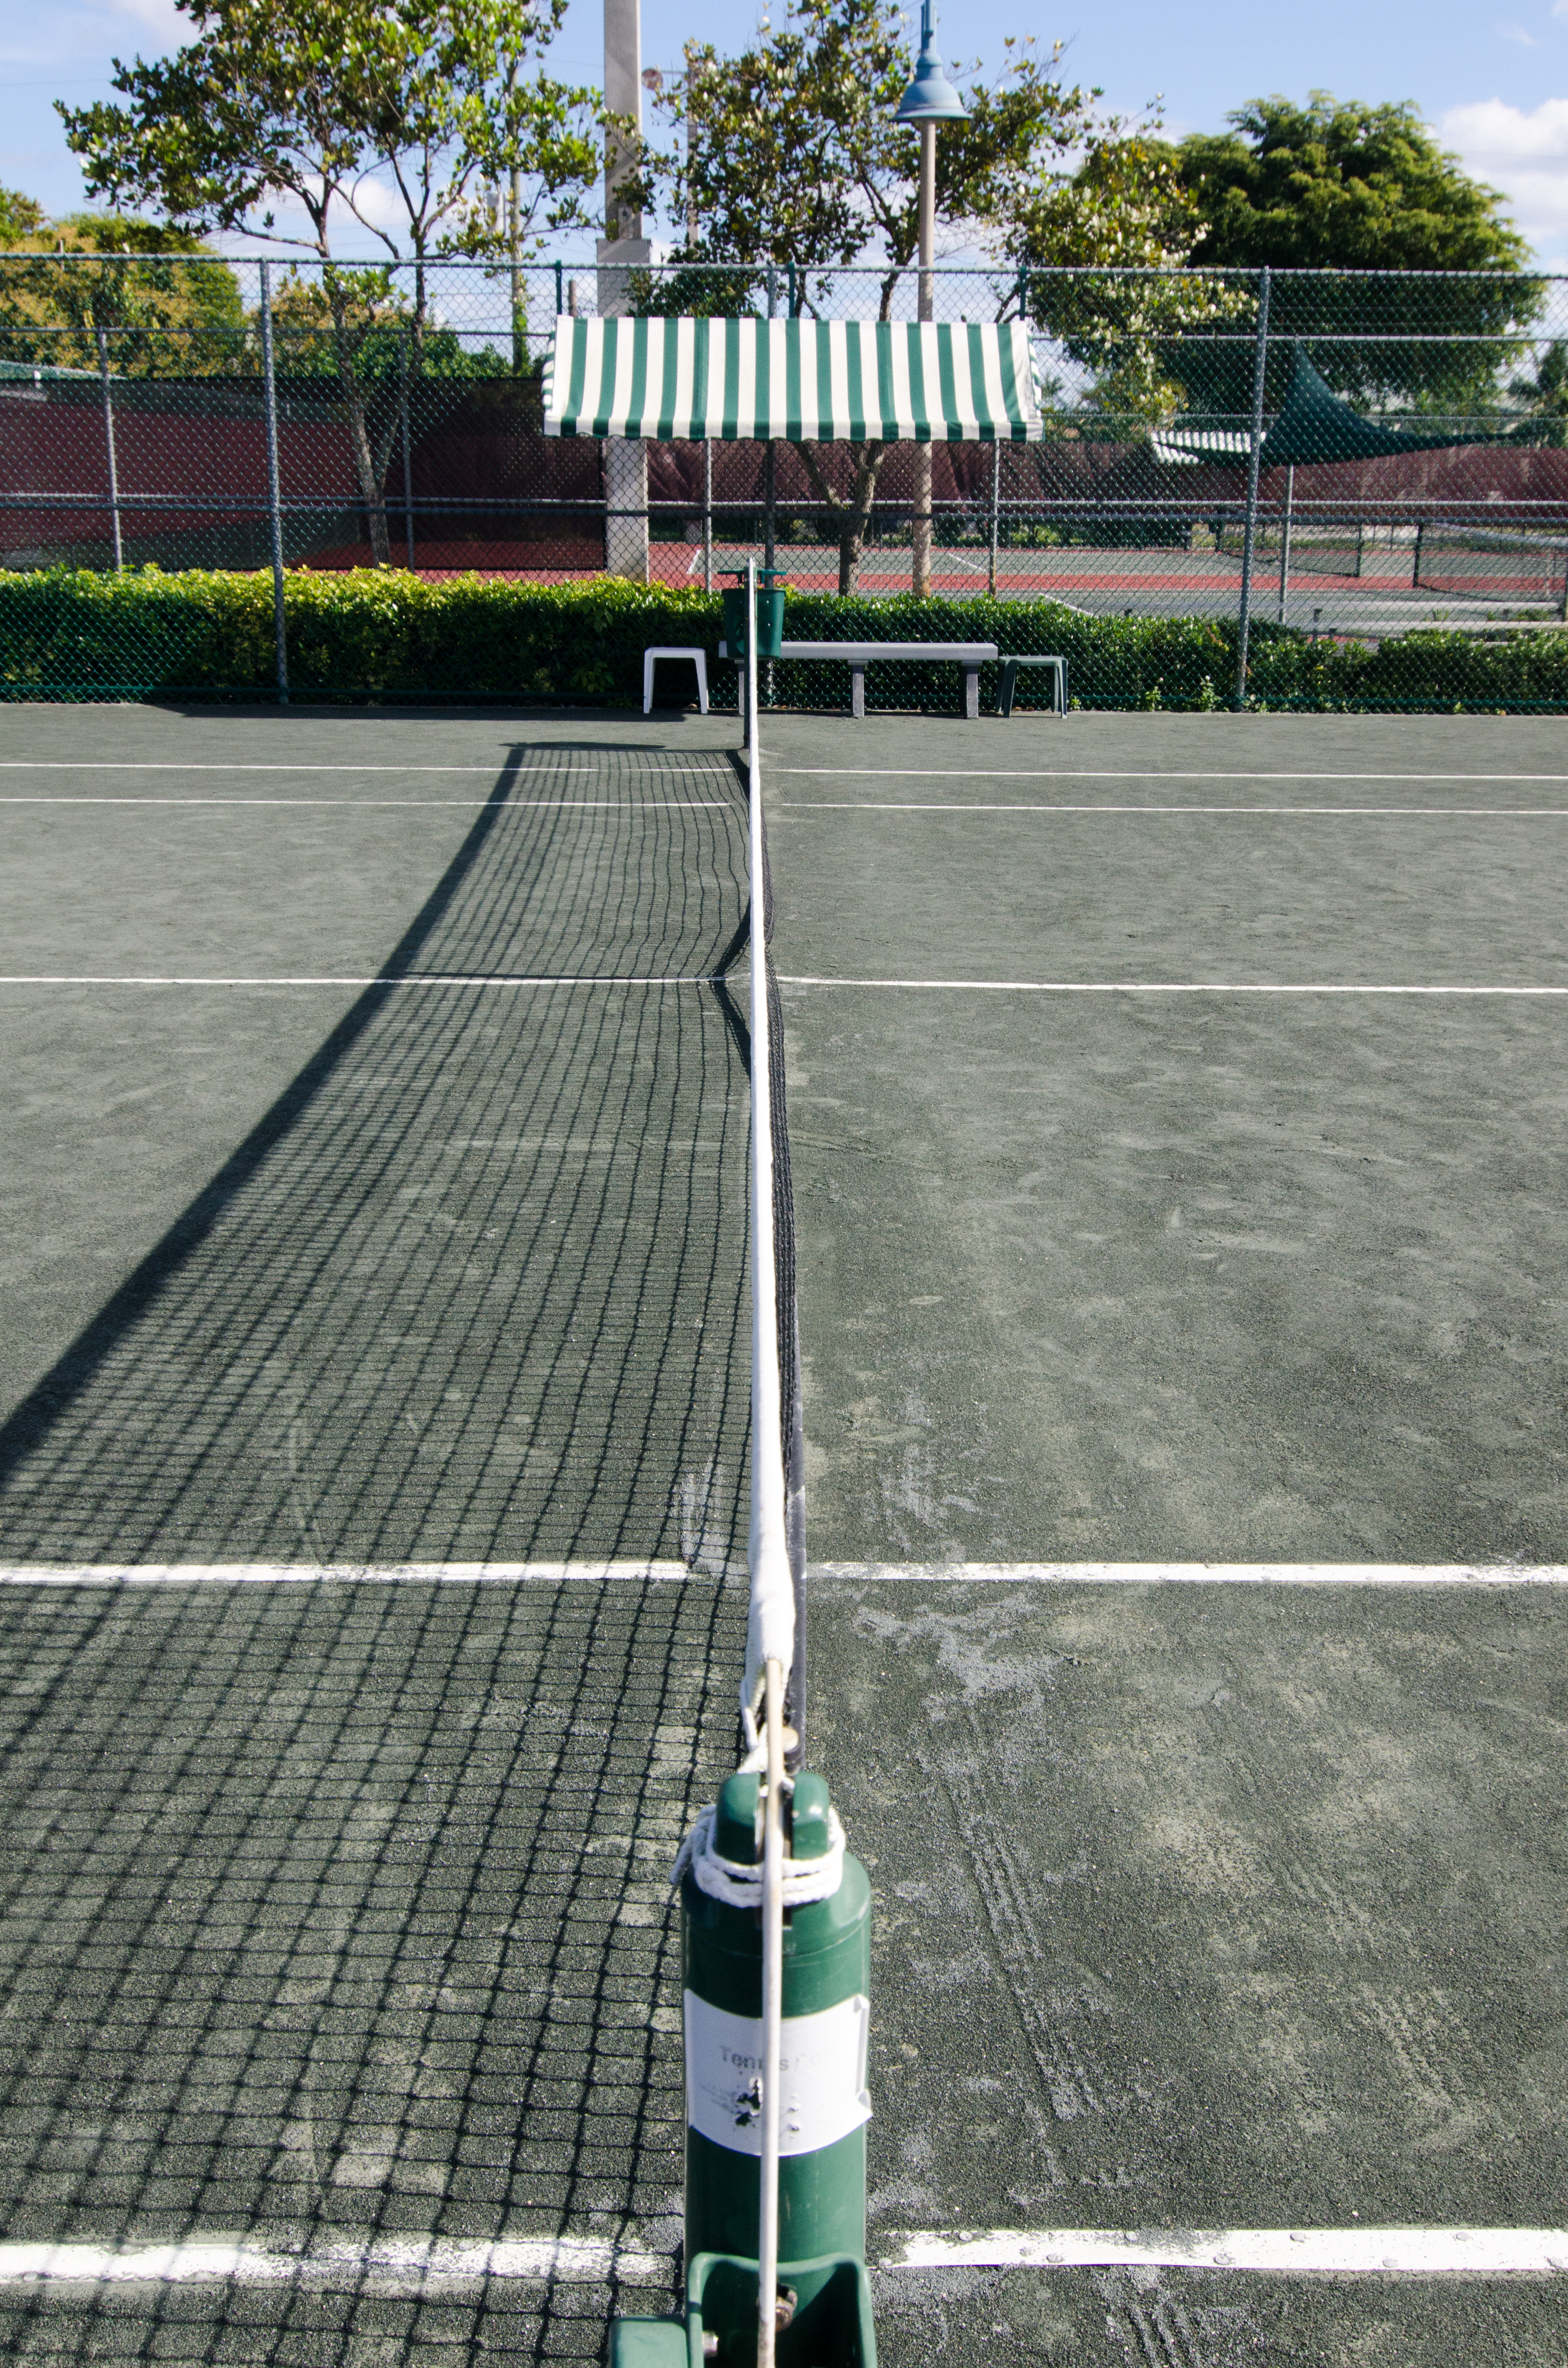 Clay Tennis Courts at the Hagen Park Tennis Center